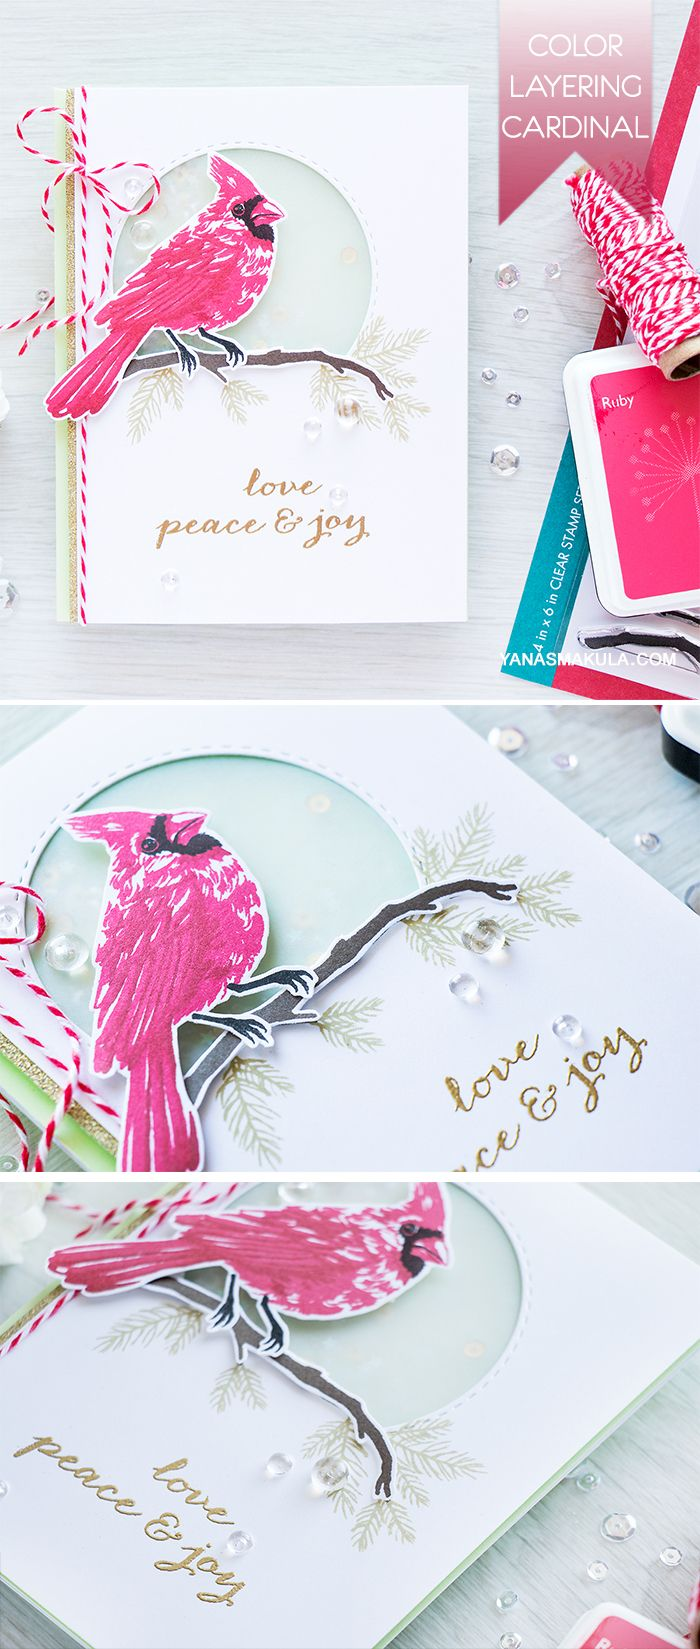 34 Best Cards Vellum Images On Pinterest Cardmaking Cards And